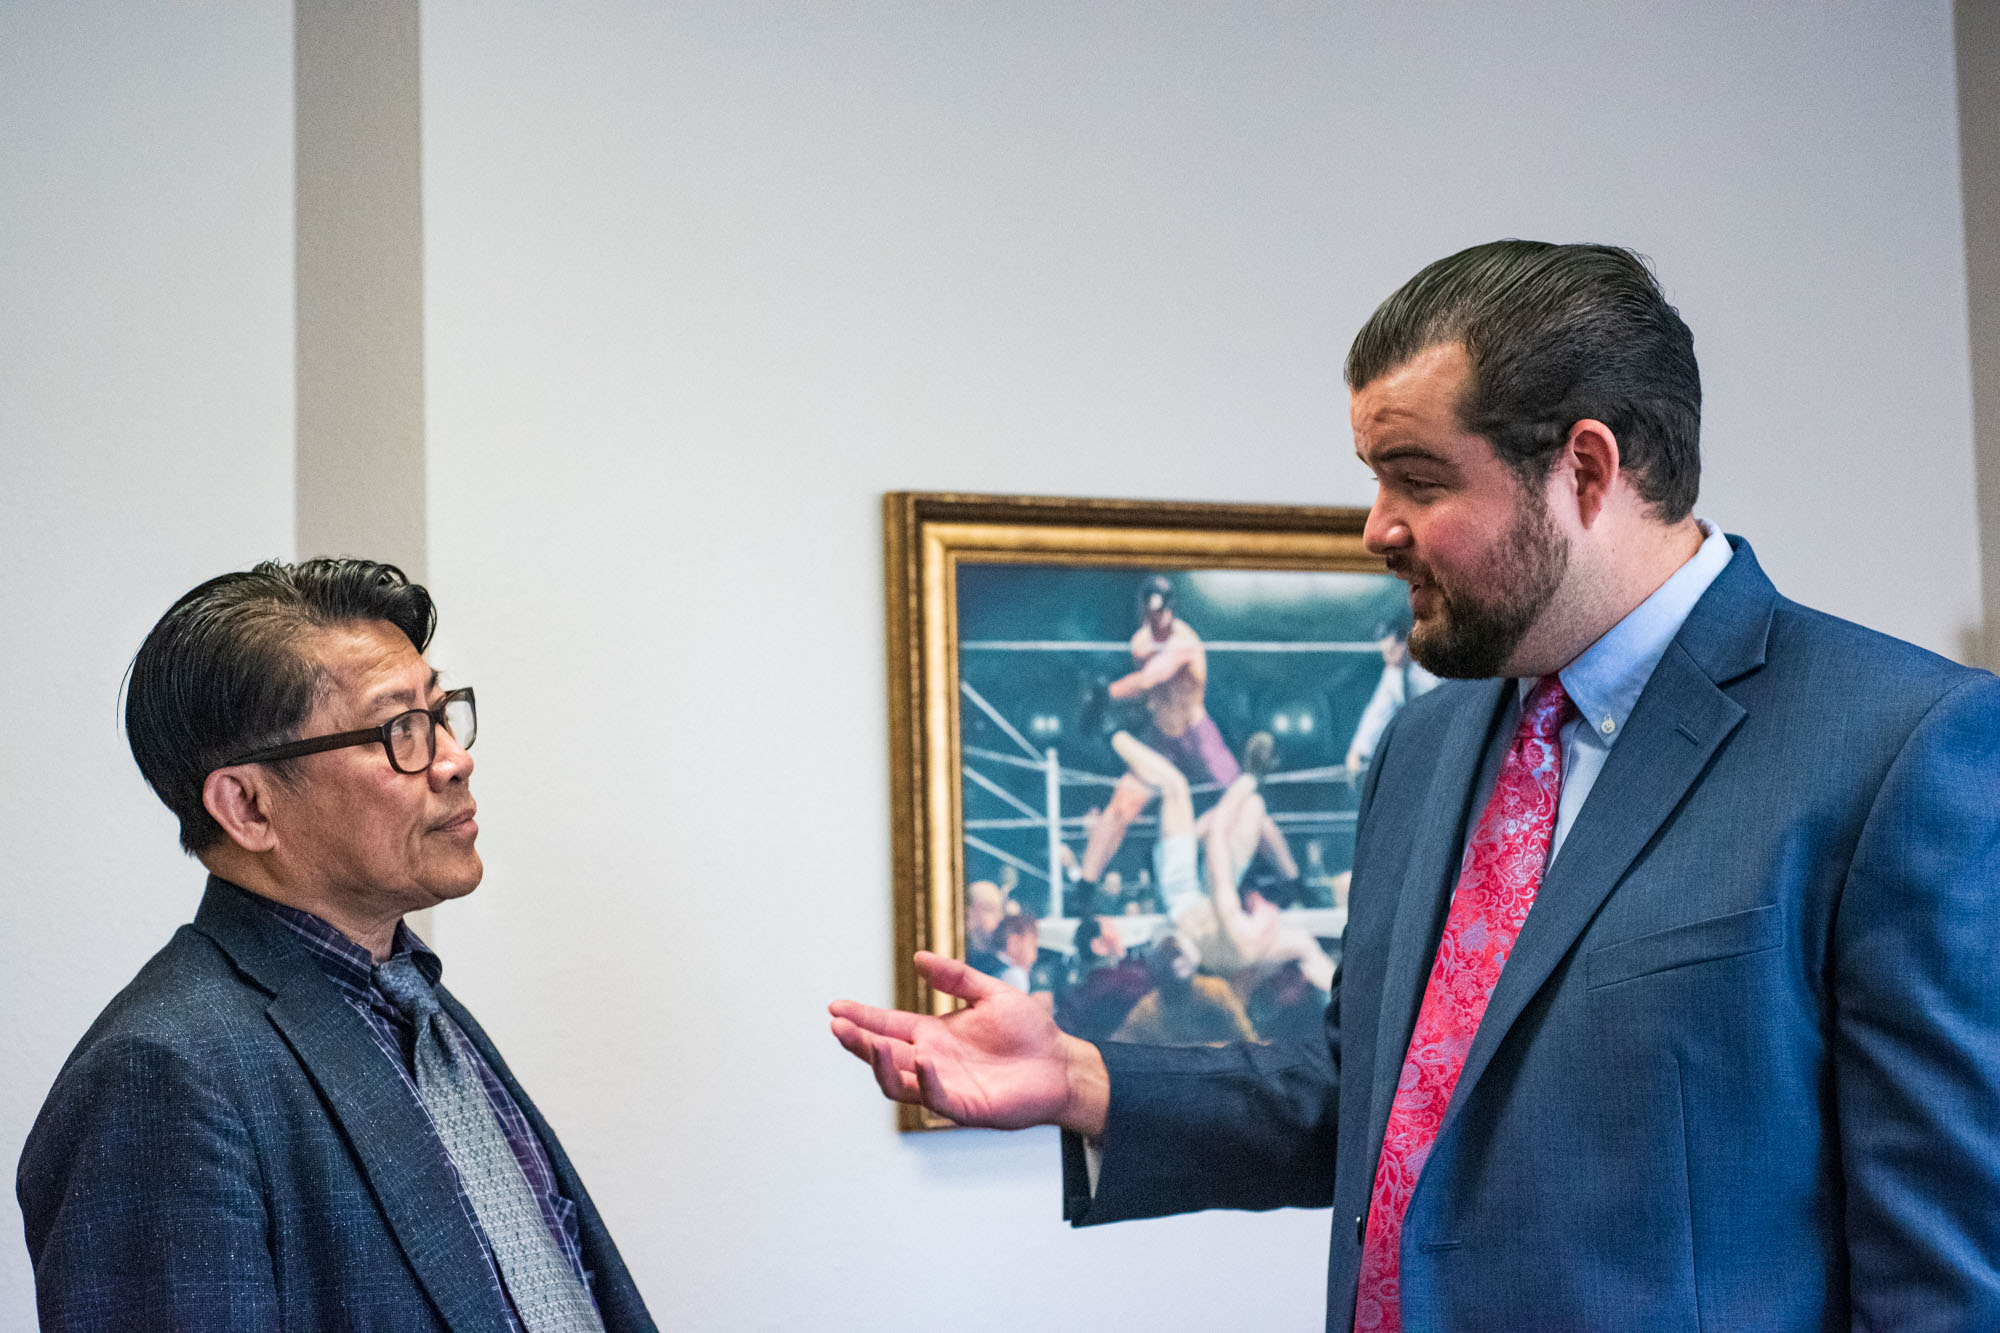 two lawyers discuss a case in front of a painting of a boxing match